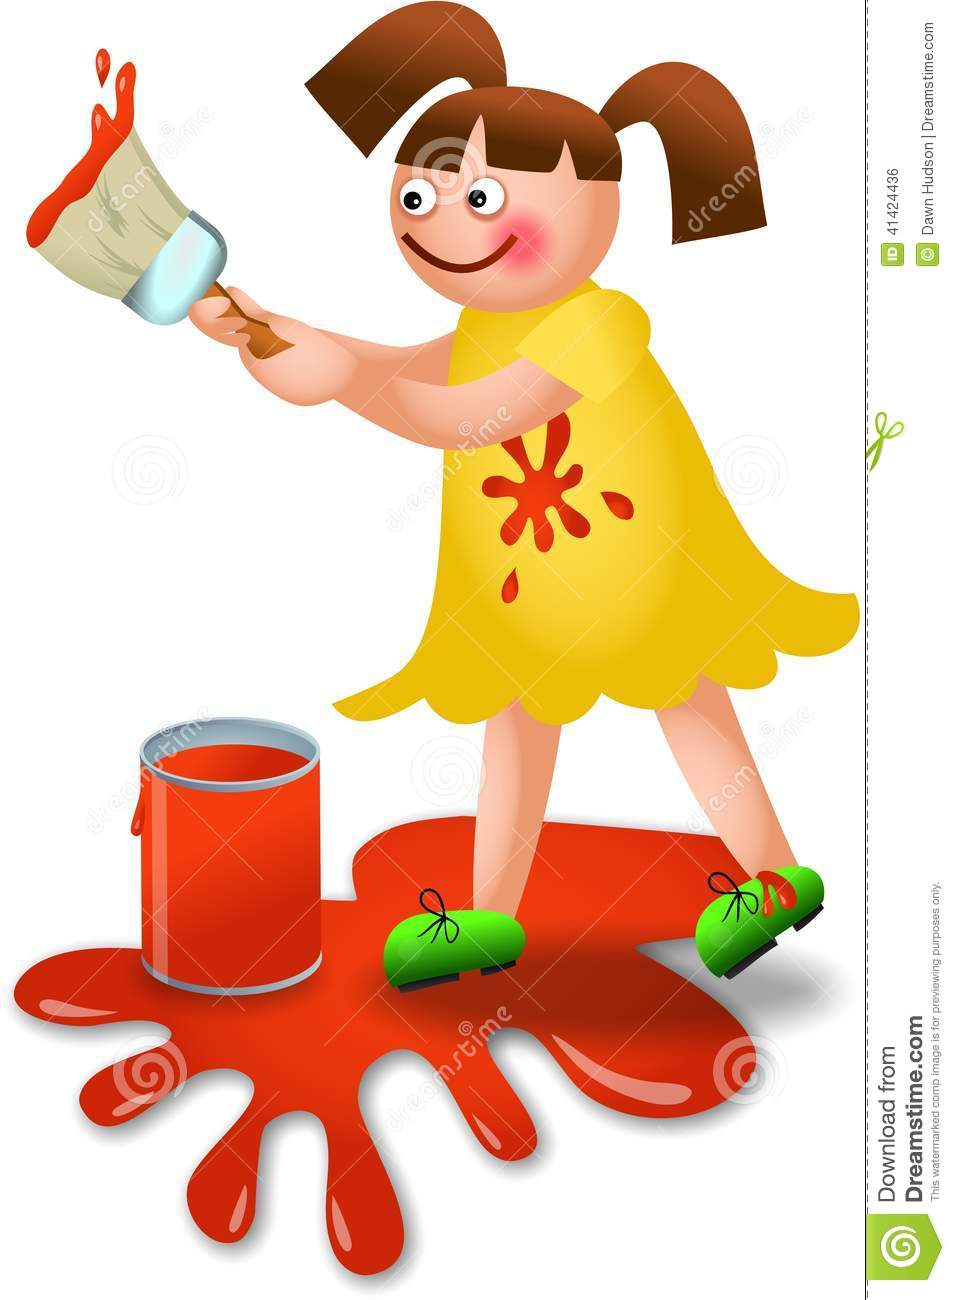 Girl Painting Clipart - Clipart Suggest